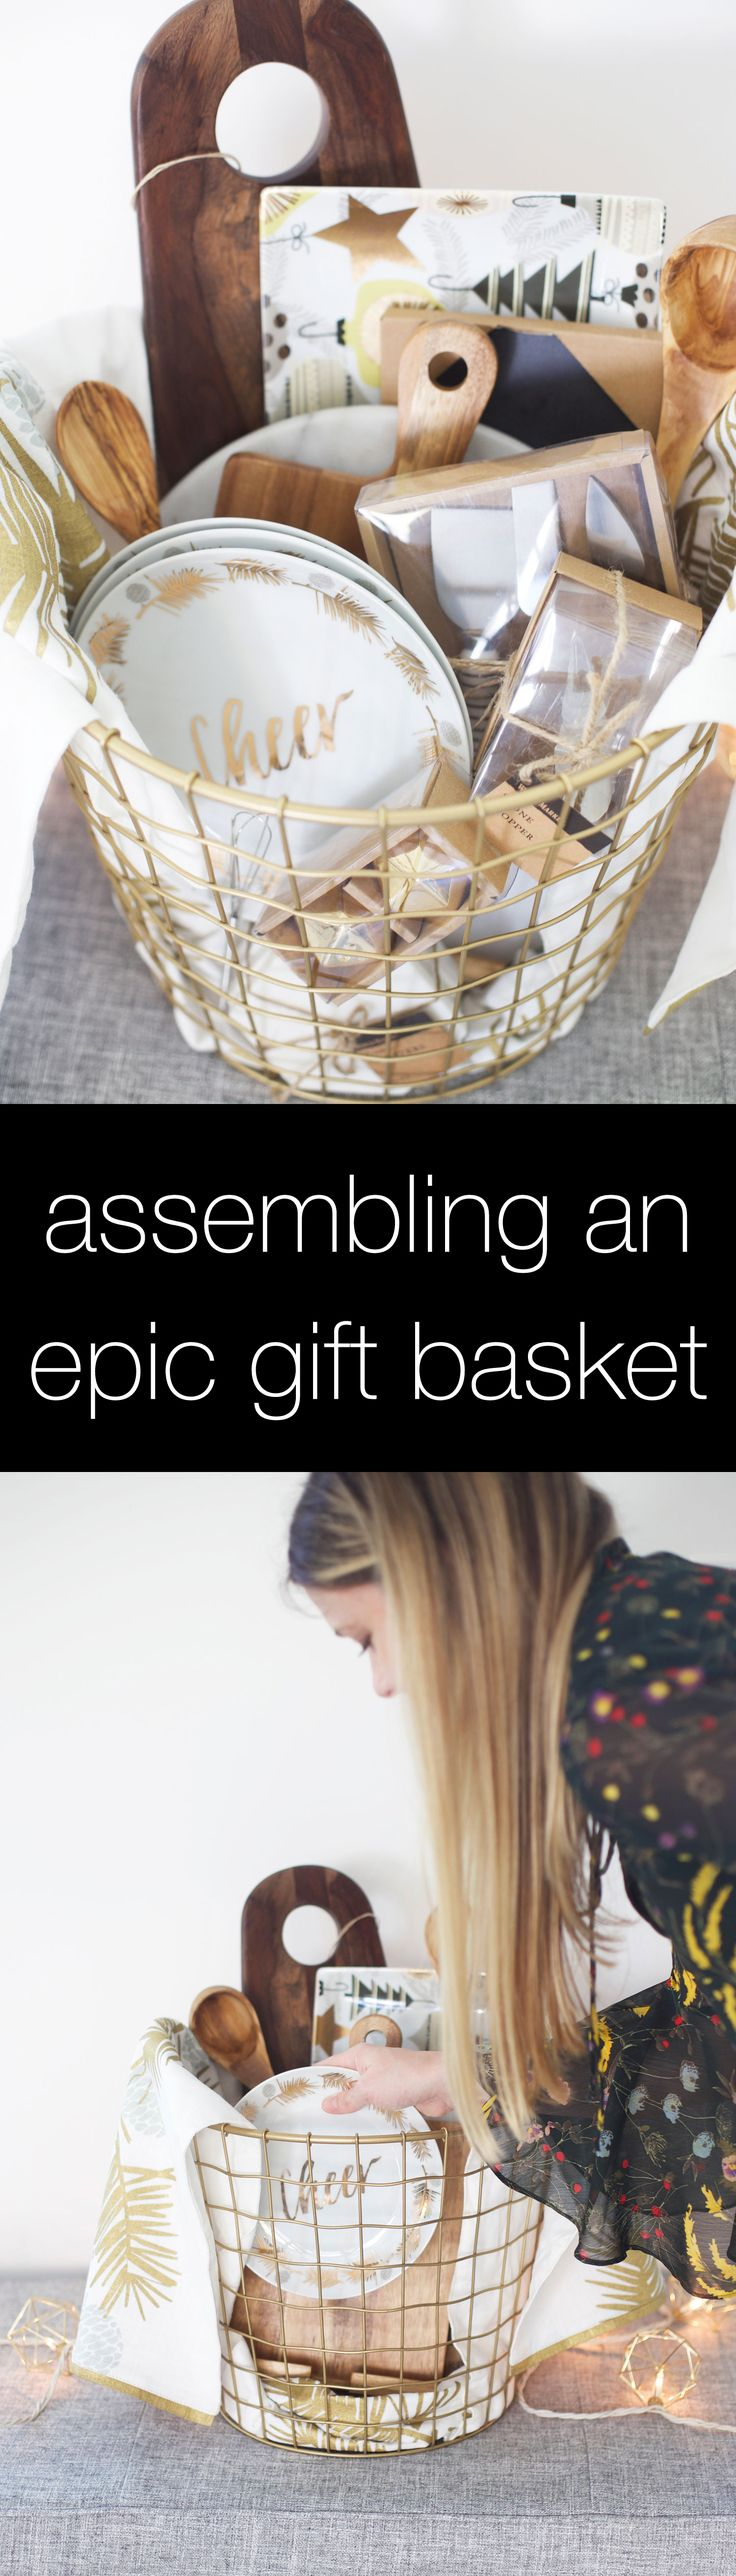 Tips for putting together an awesome holiday gift basket and beyond! @worldmarket #ad #WorldMarketJoy #worldmarkettribe